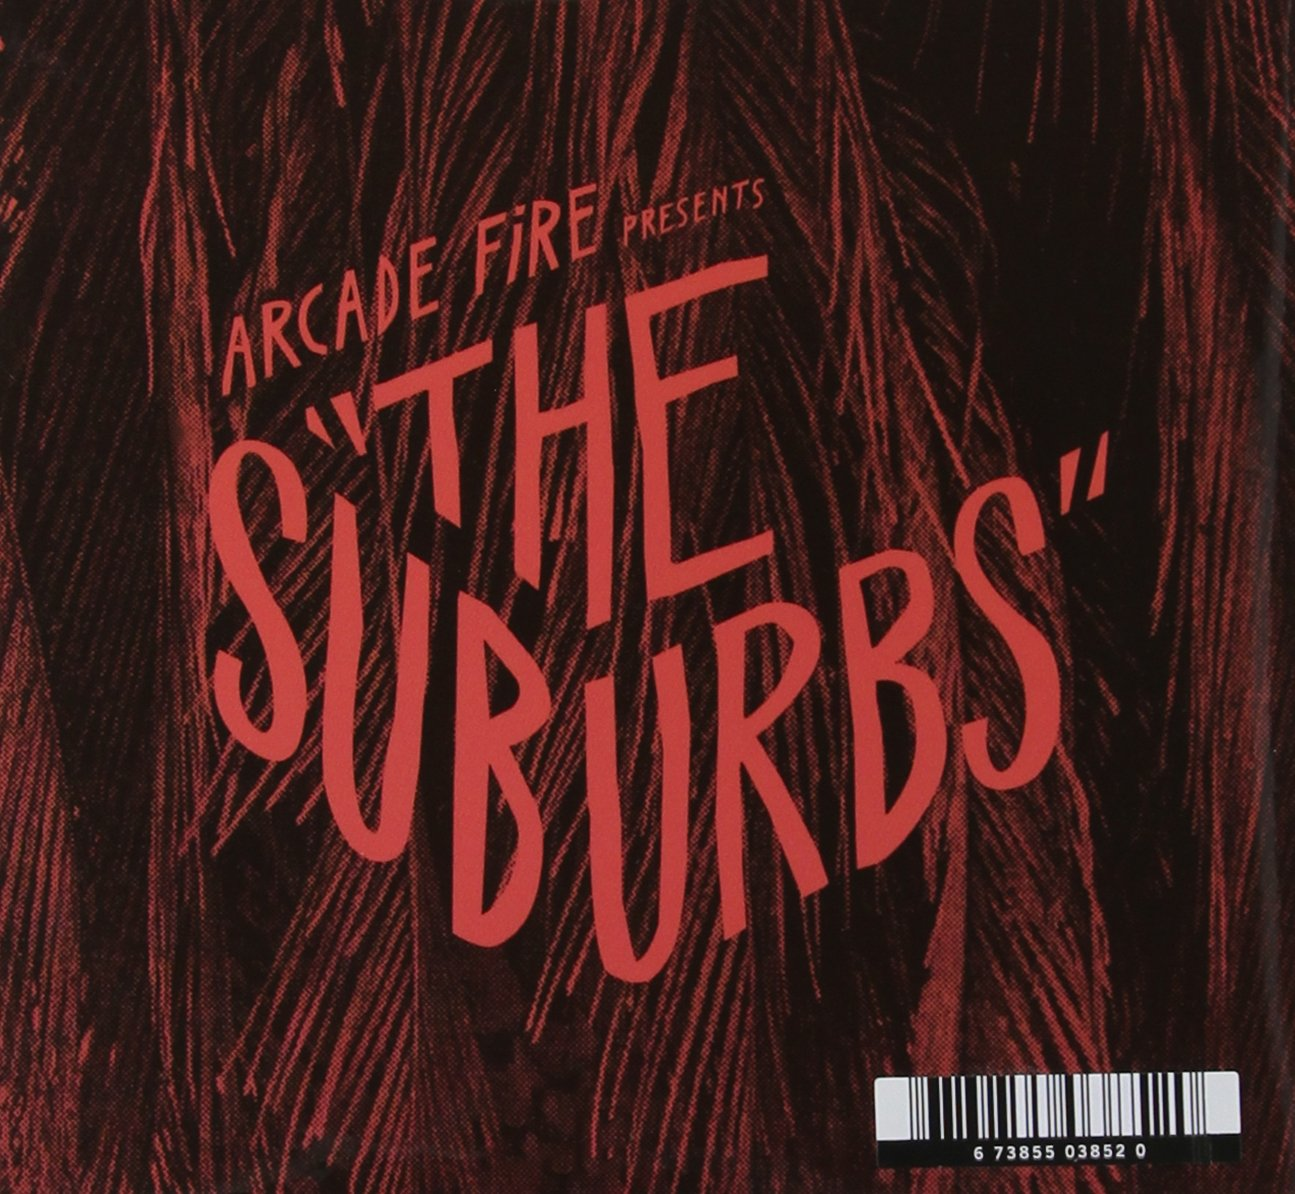 The Suburbs by Merge